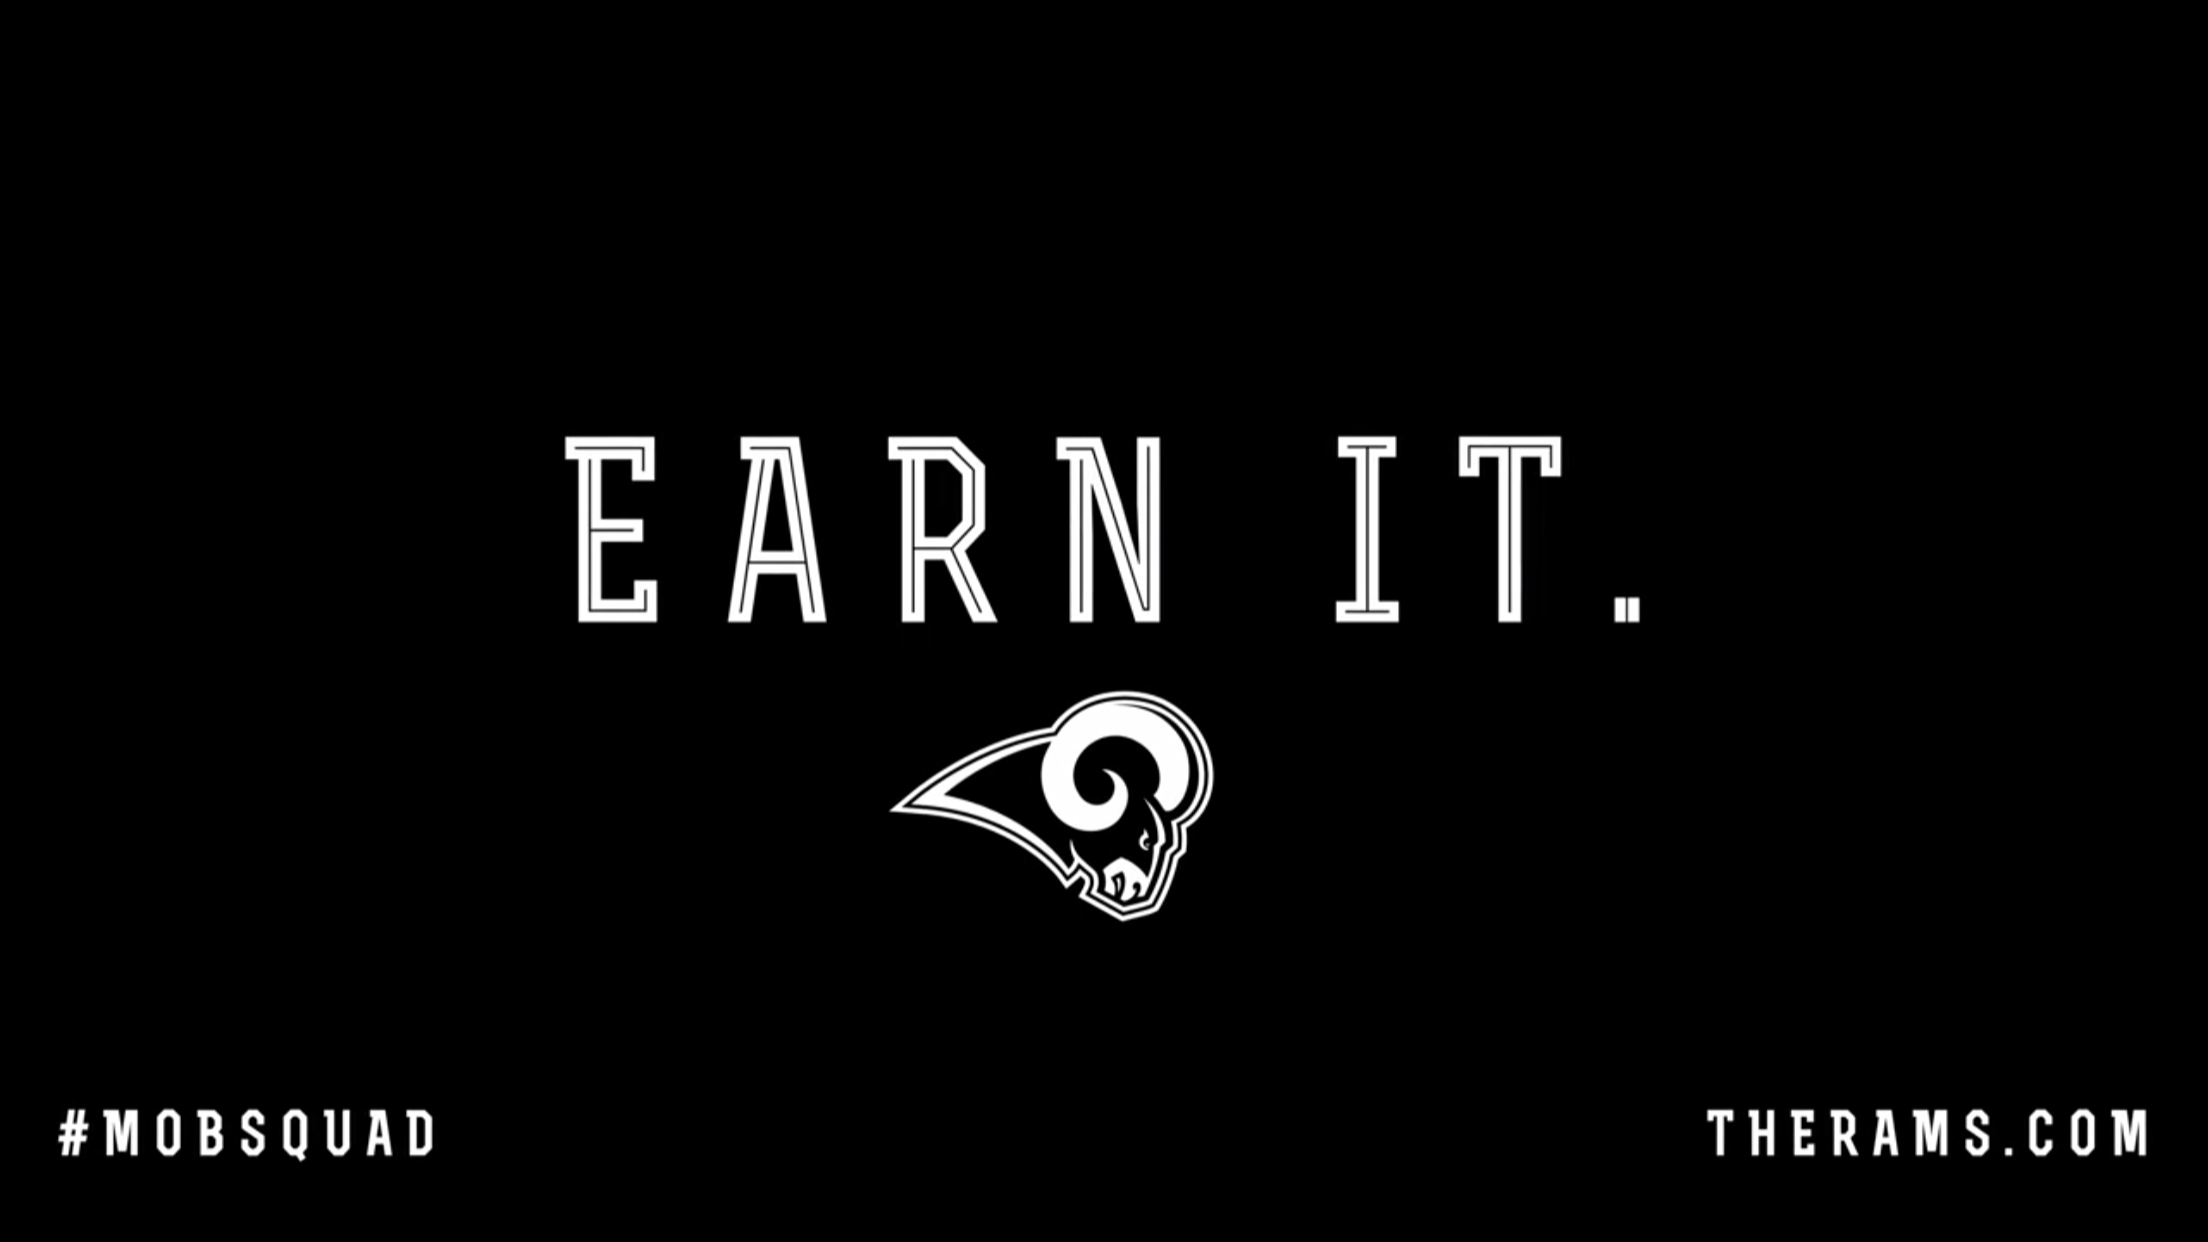 Earn it. -phone wallpaper : LosAngelesRams